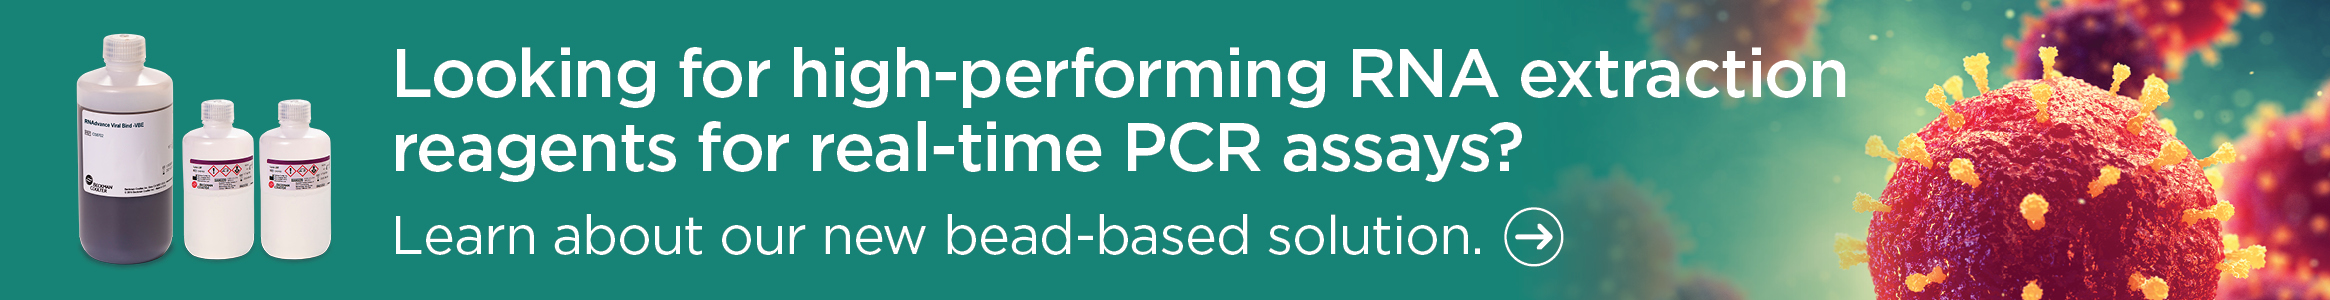 Looking for high-performance RNA extraction reagents for real-time PCR assays v2